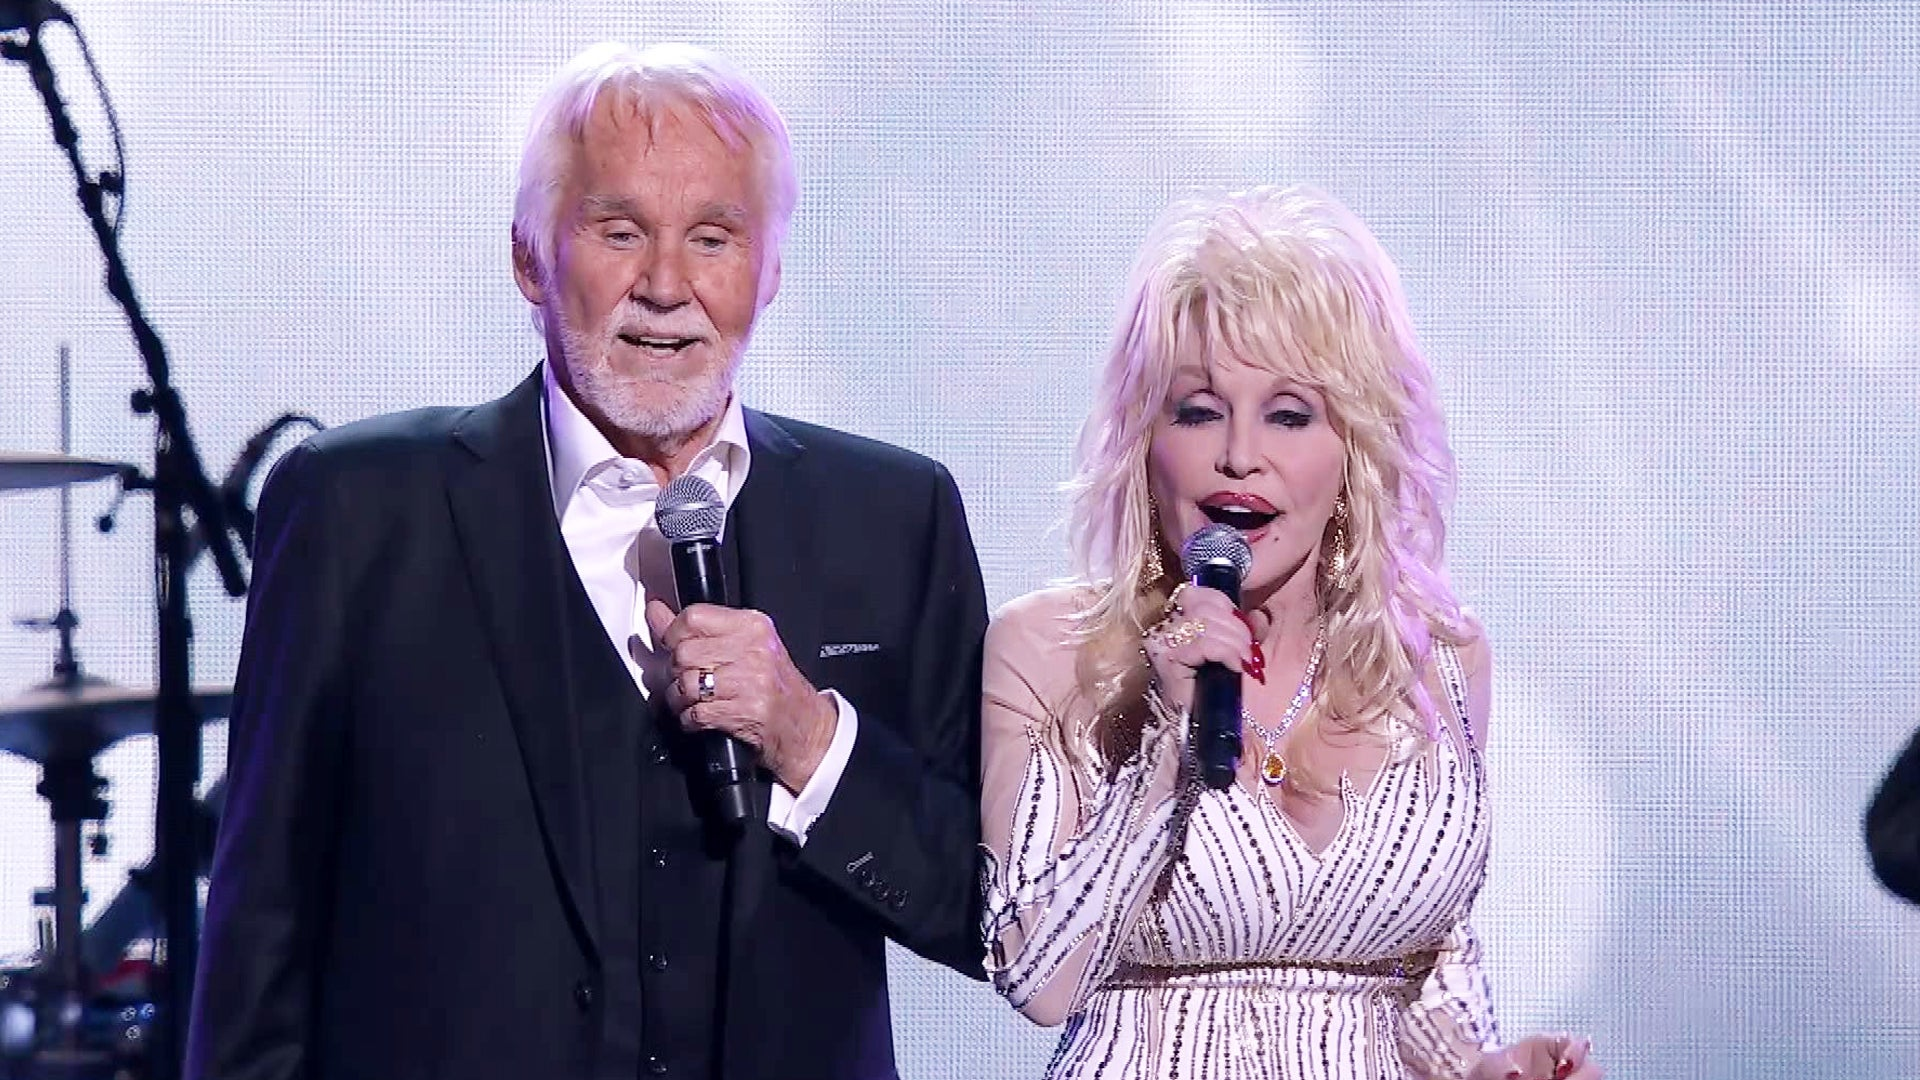 Watch Kenny Rogers and Dolly Parton's Final Performance of 'Islands in the Stream'